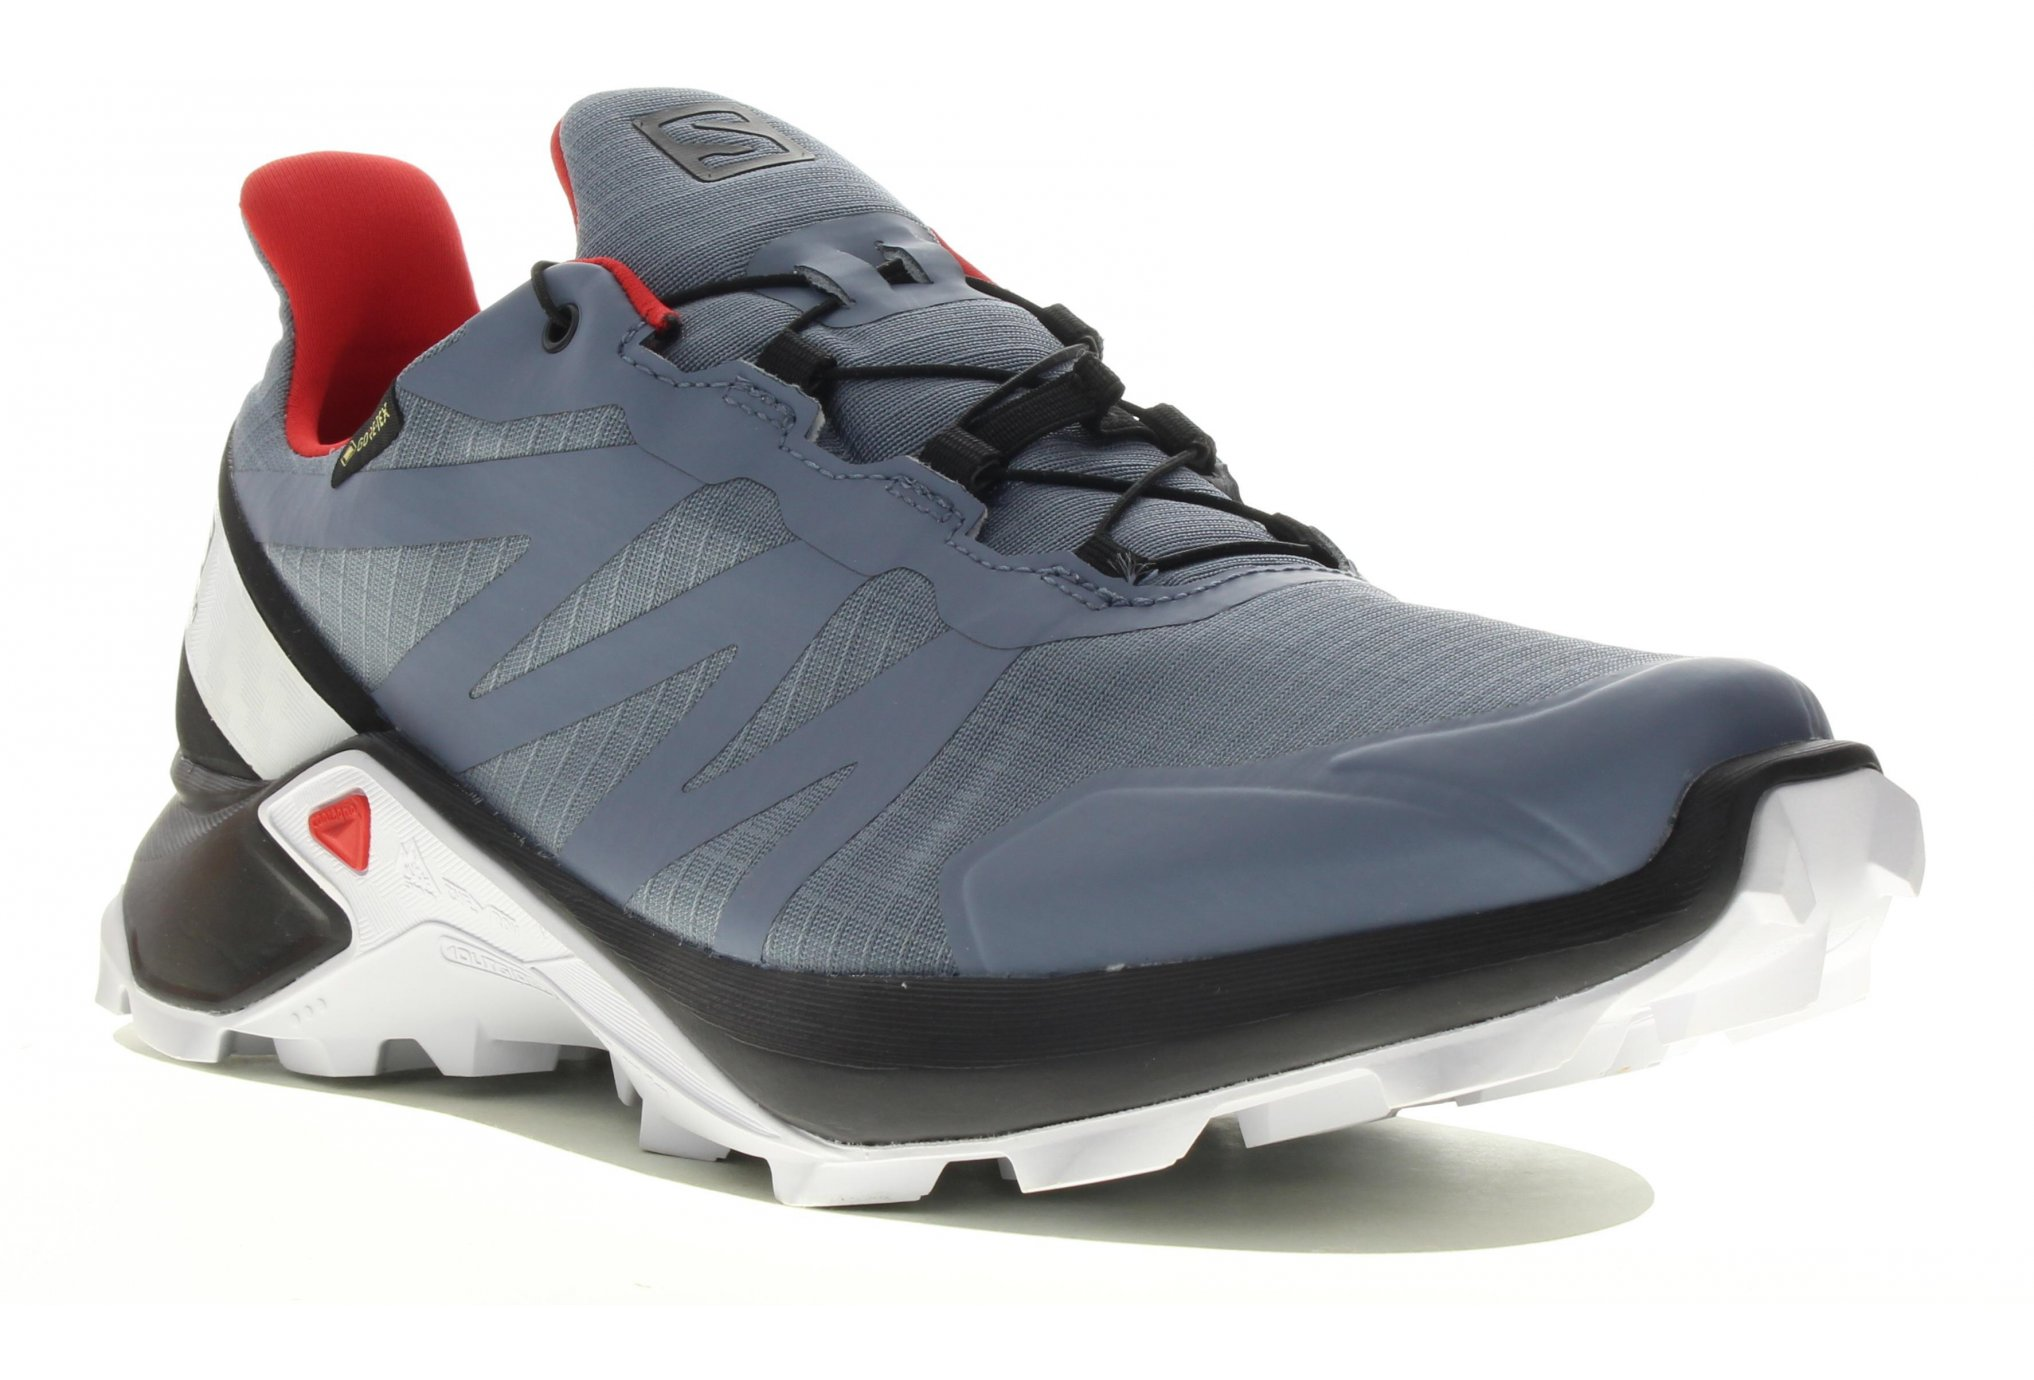 Salomon Supercrosss Gore-Tex Chaussures homme